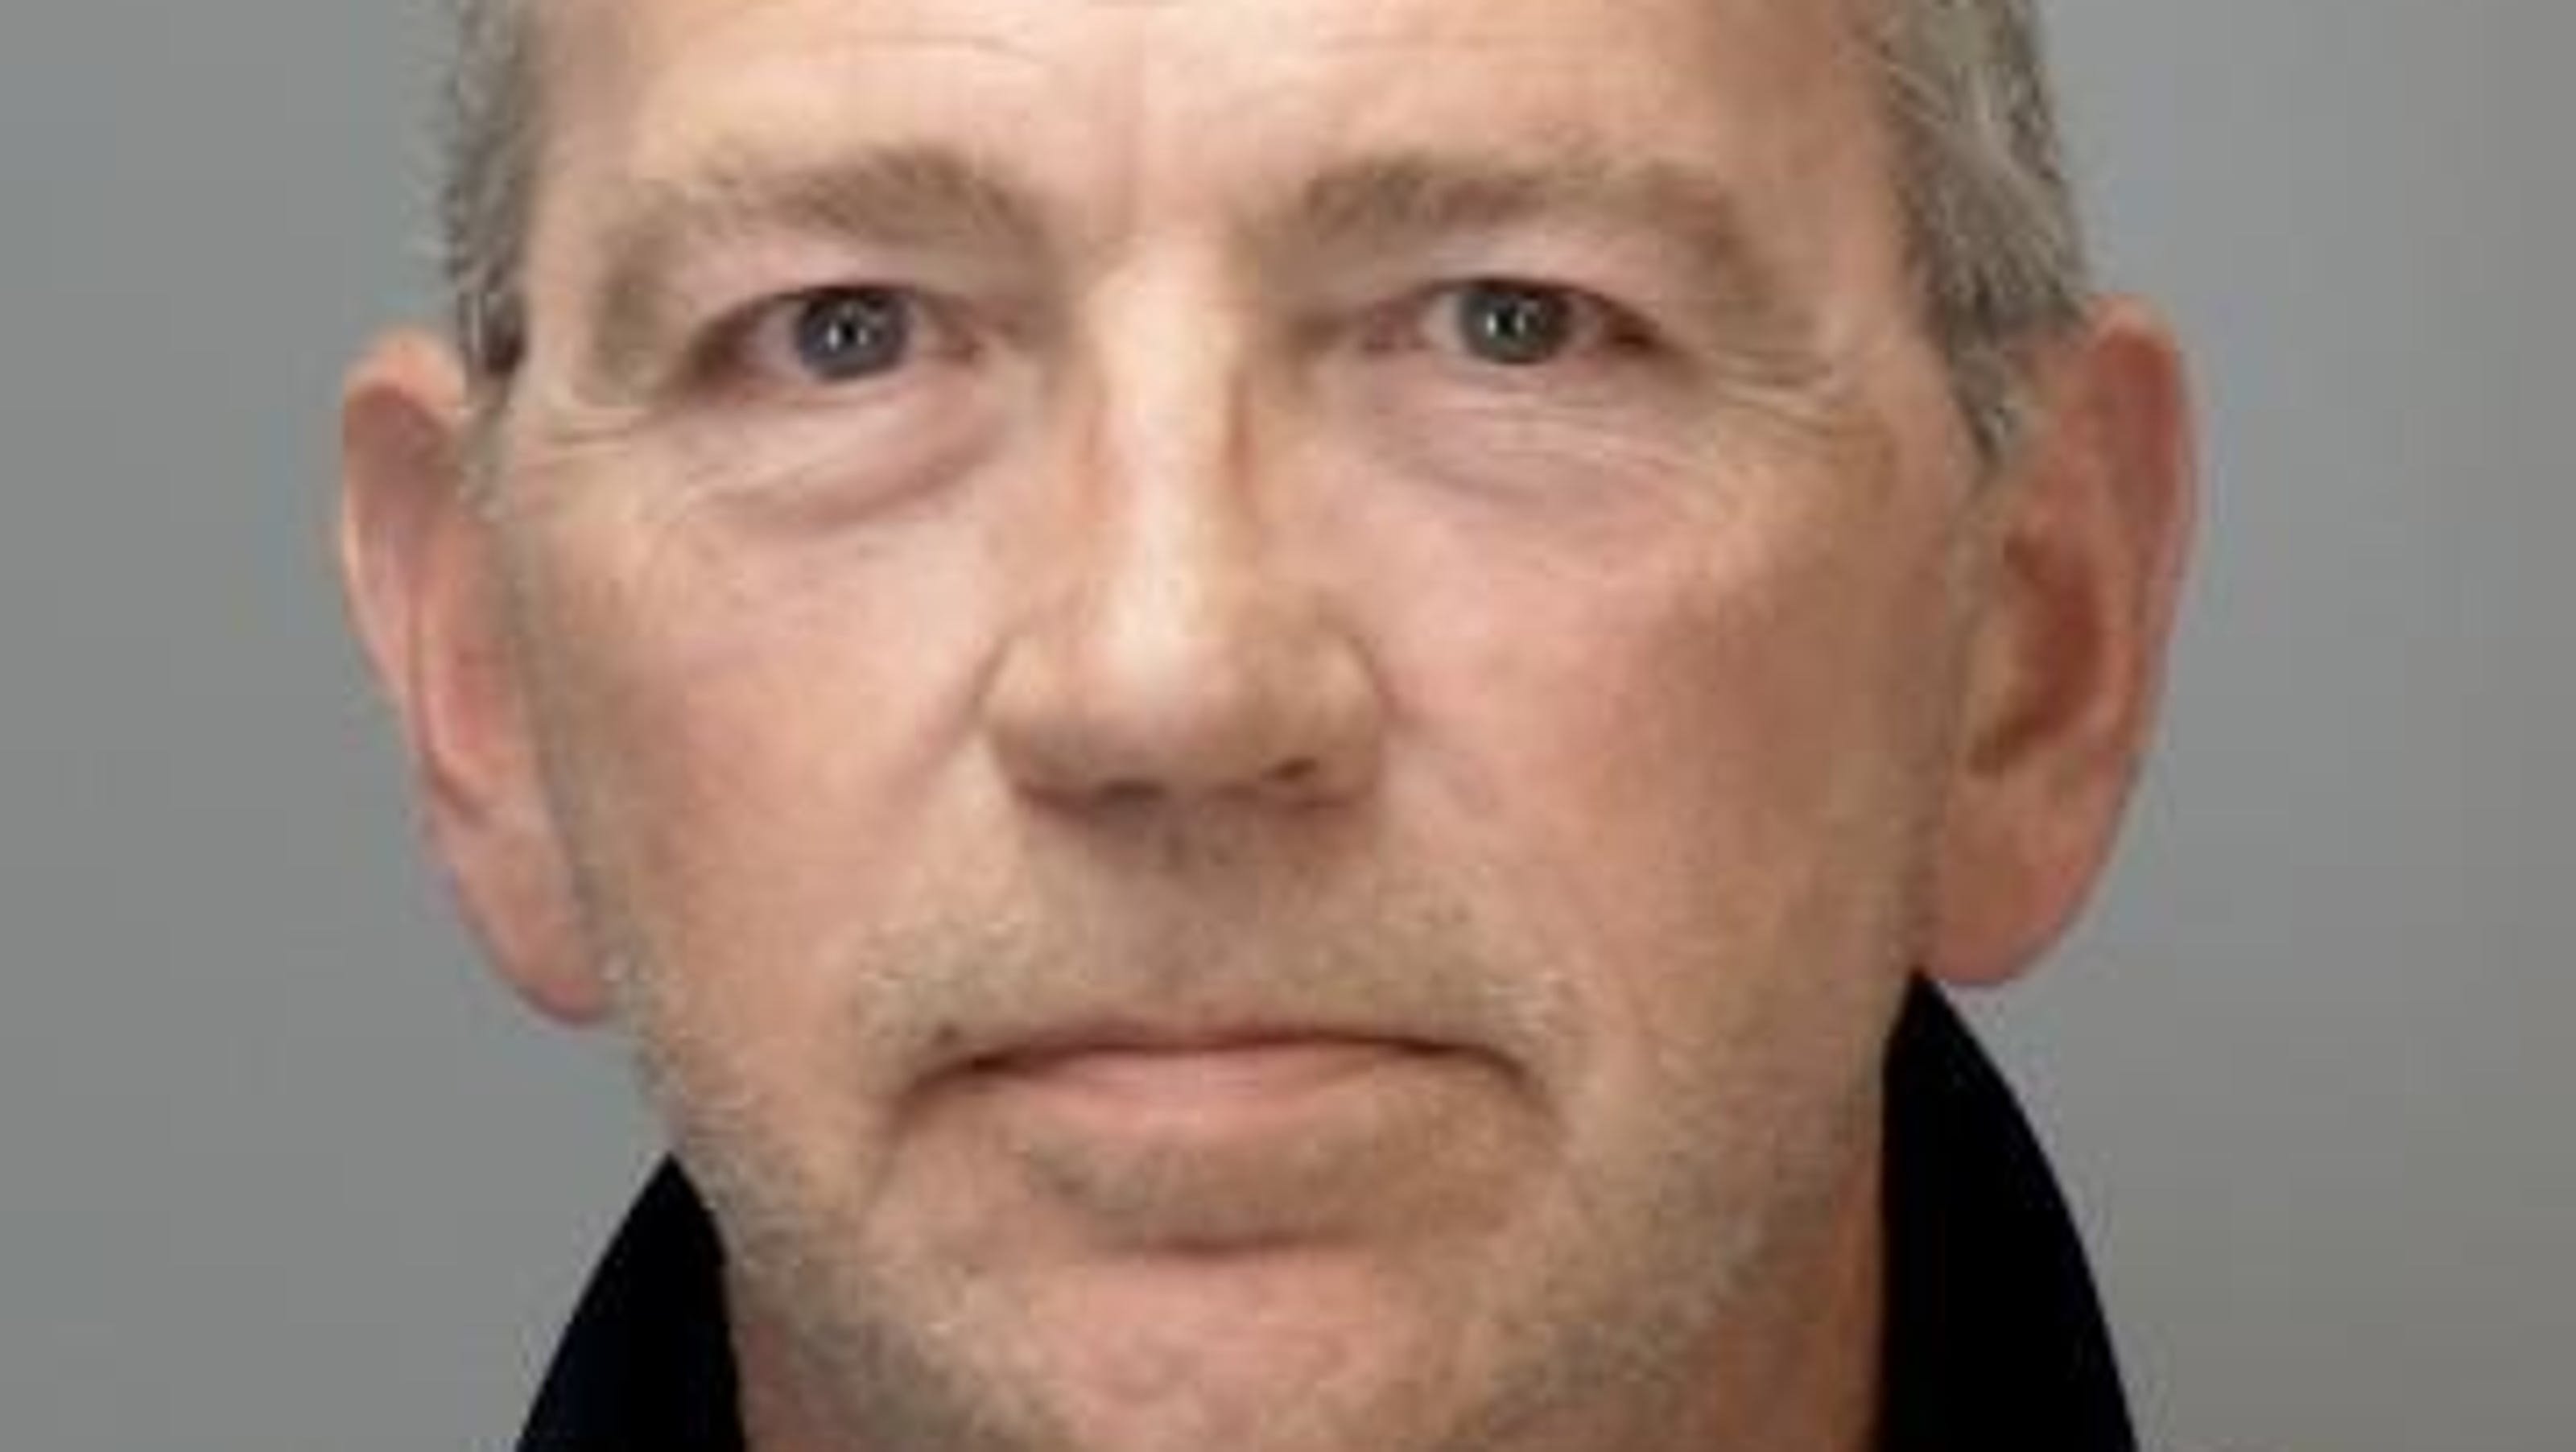 Cryptic Ad Led Police To Msu Health Physicist Charged With Bestiality